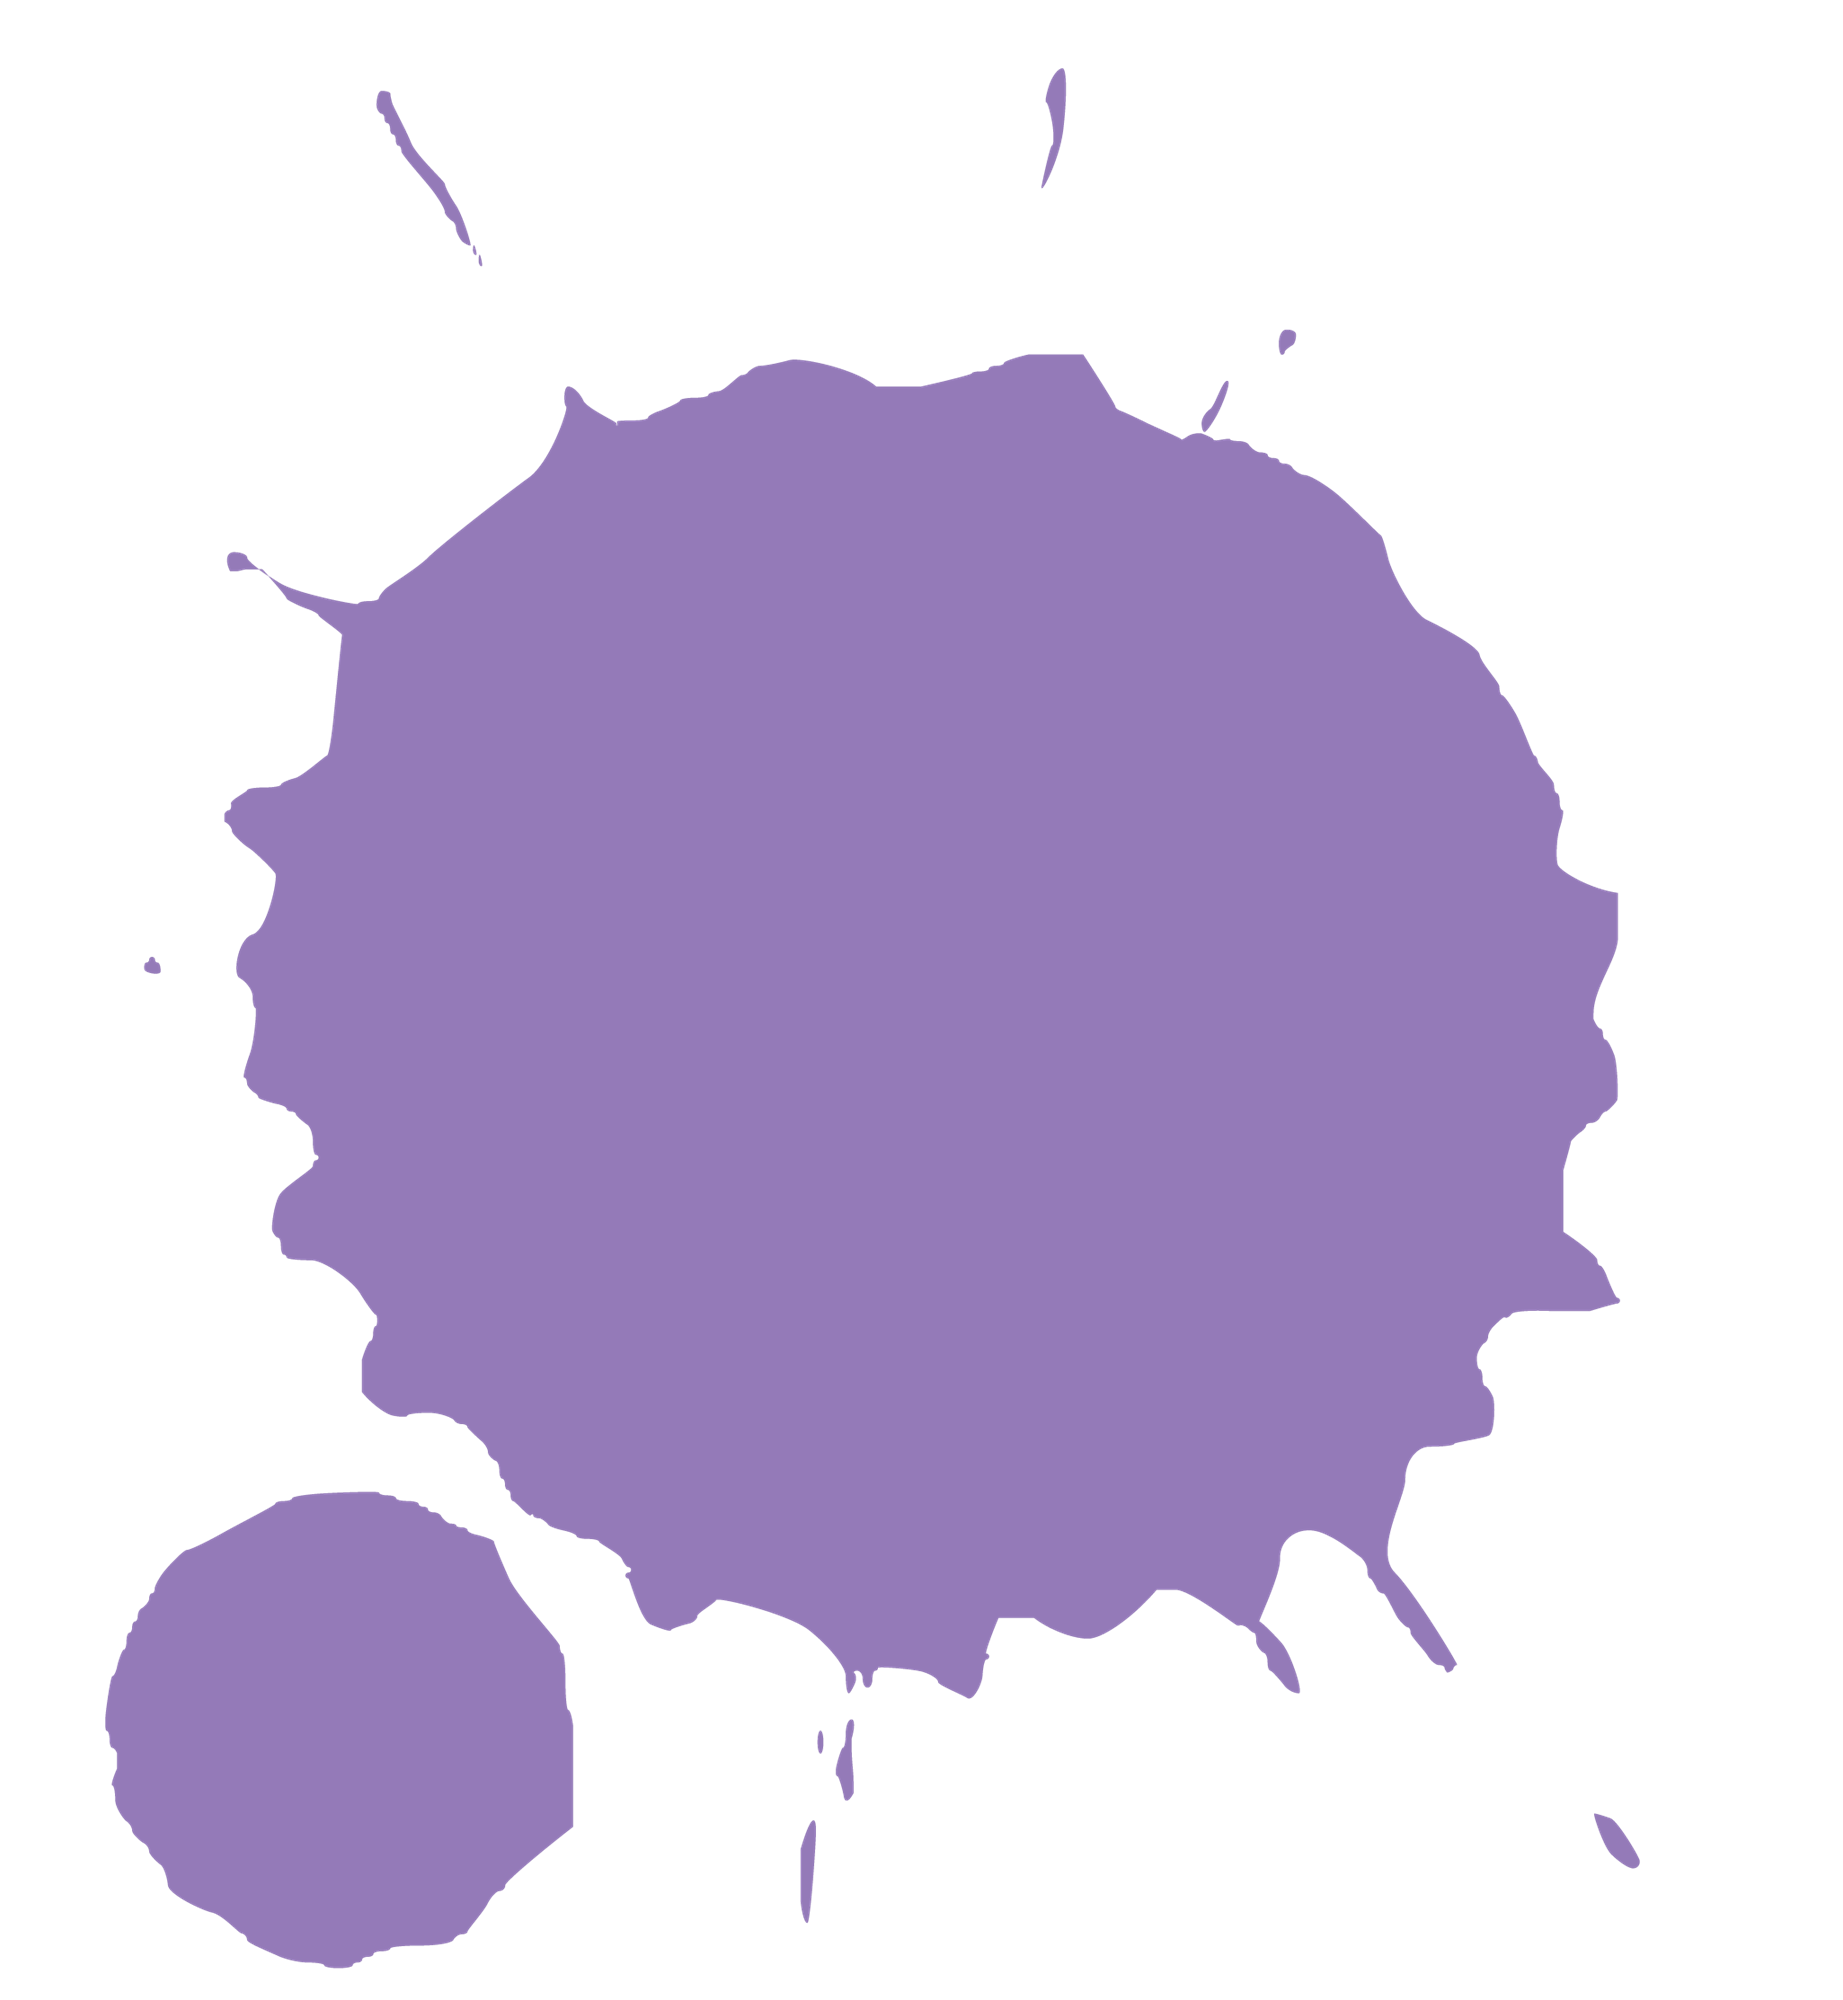 icons - paint splatters arts kids sensory - purple-01.png